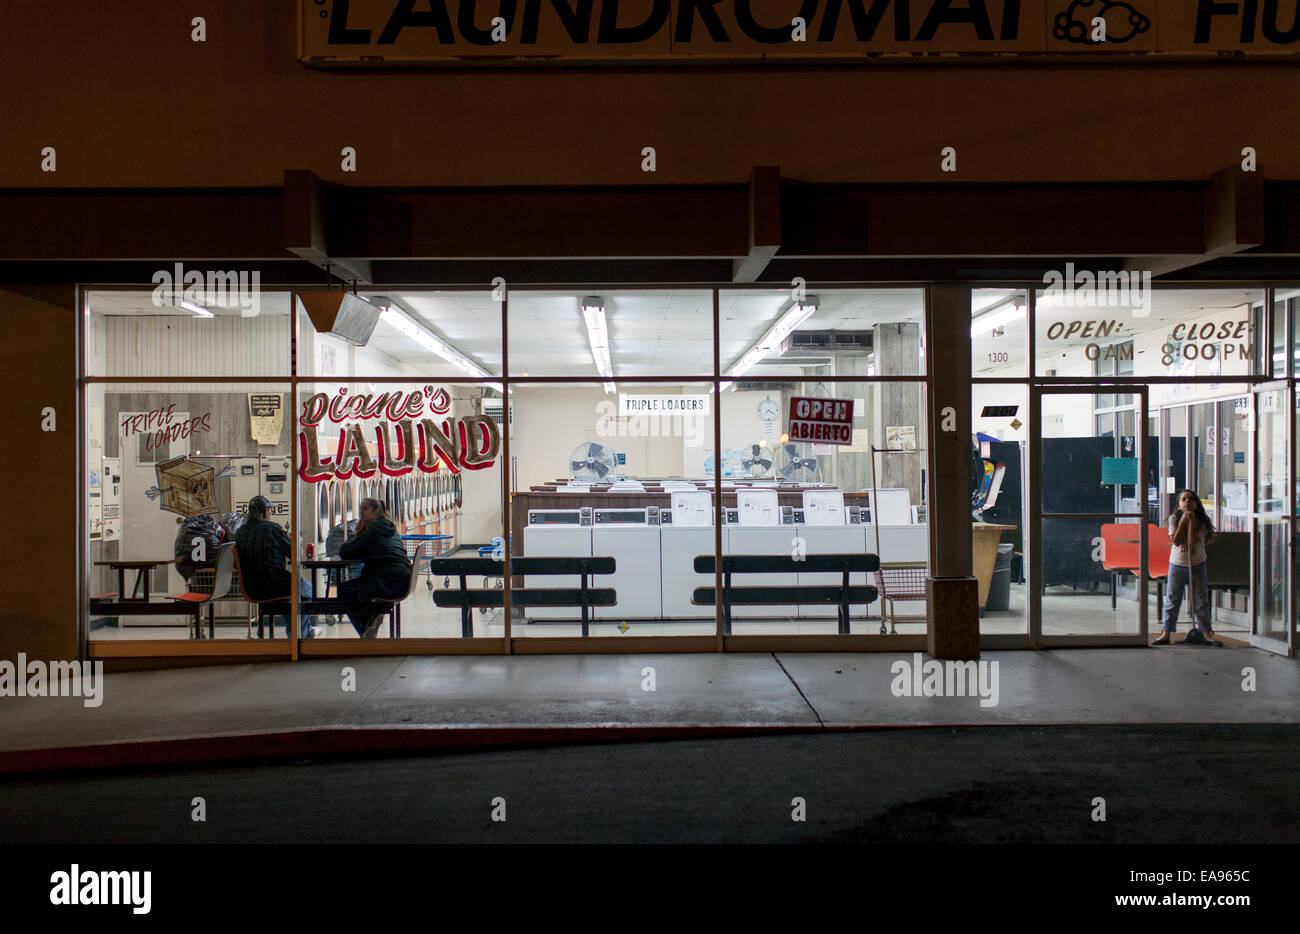 Diane's Laundromat on Route 66, Barstow, California - Stock Image